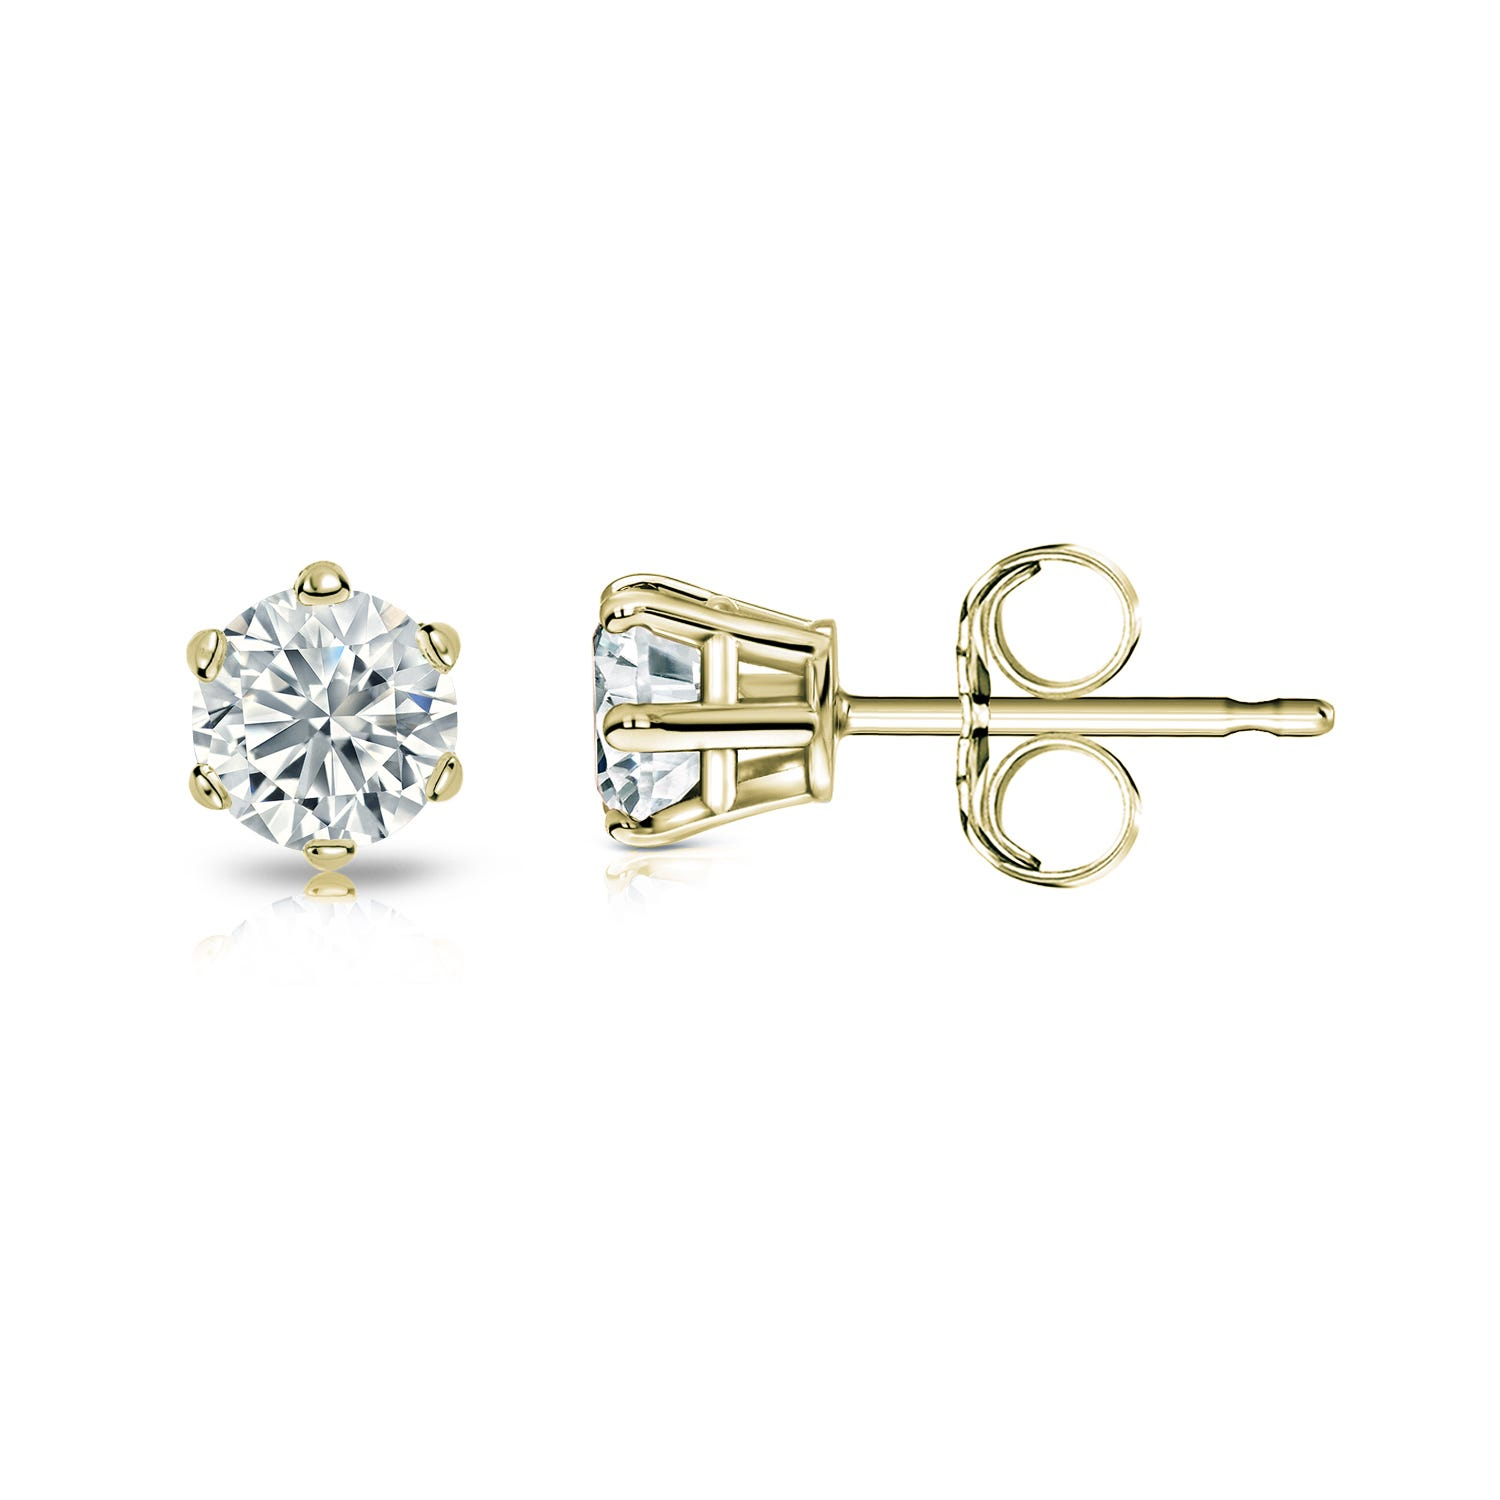 Round Diamond 1/7ctw. (IJ-I2) Solitaire Stud 6-Prong Earrings in 10K Yellow Gold